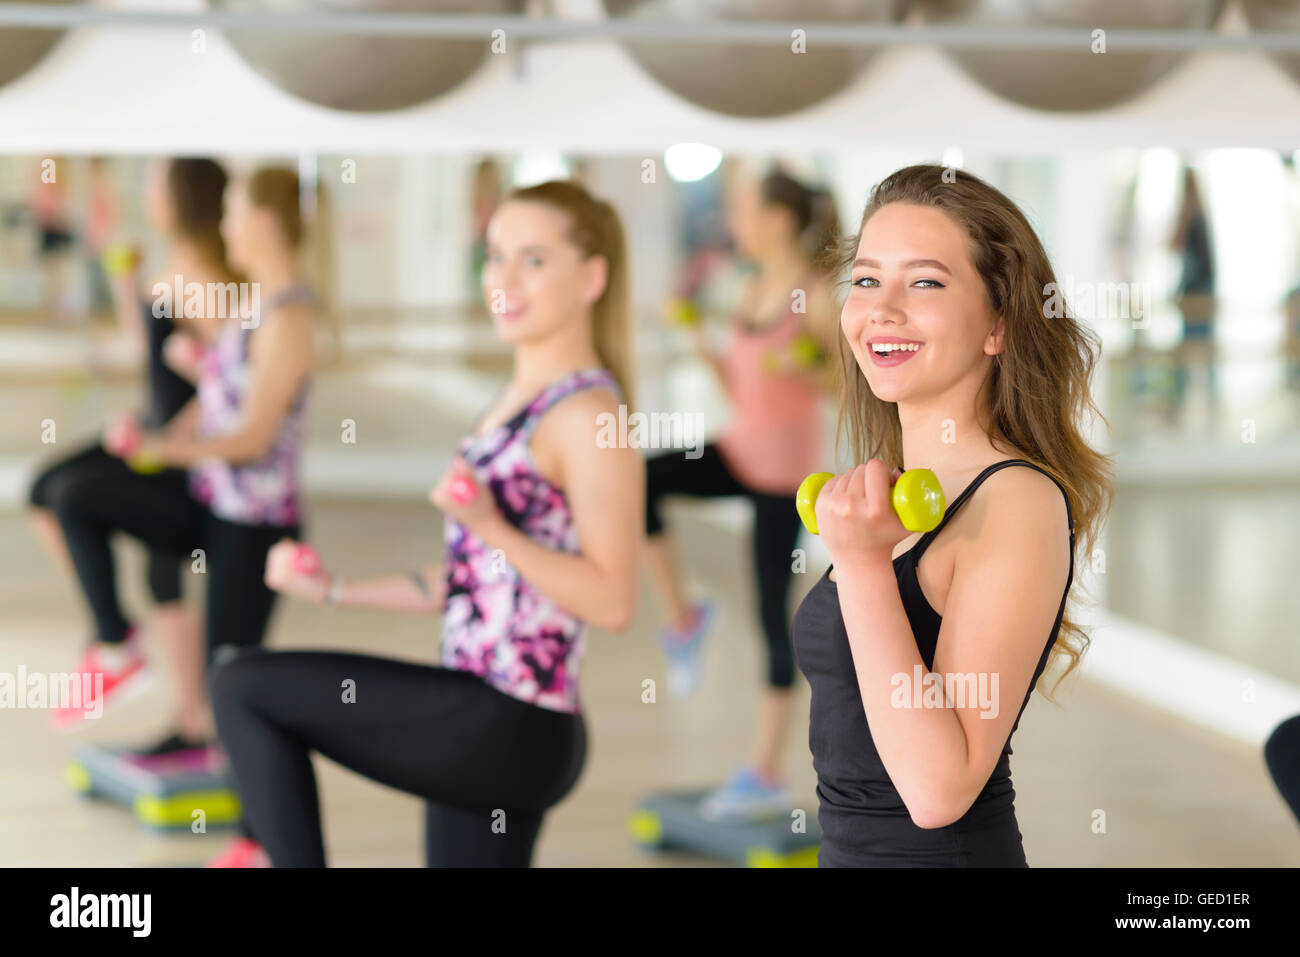 People exercising with dumbbell at gym - Stock Image